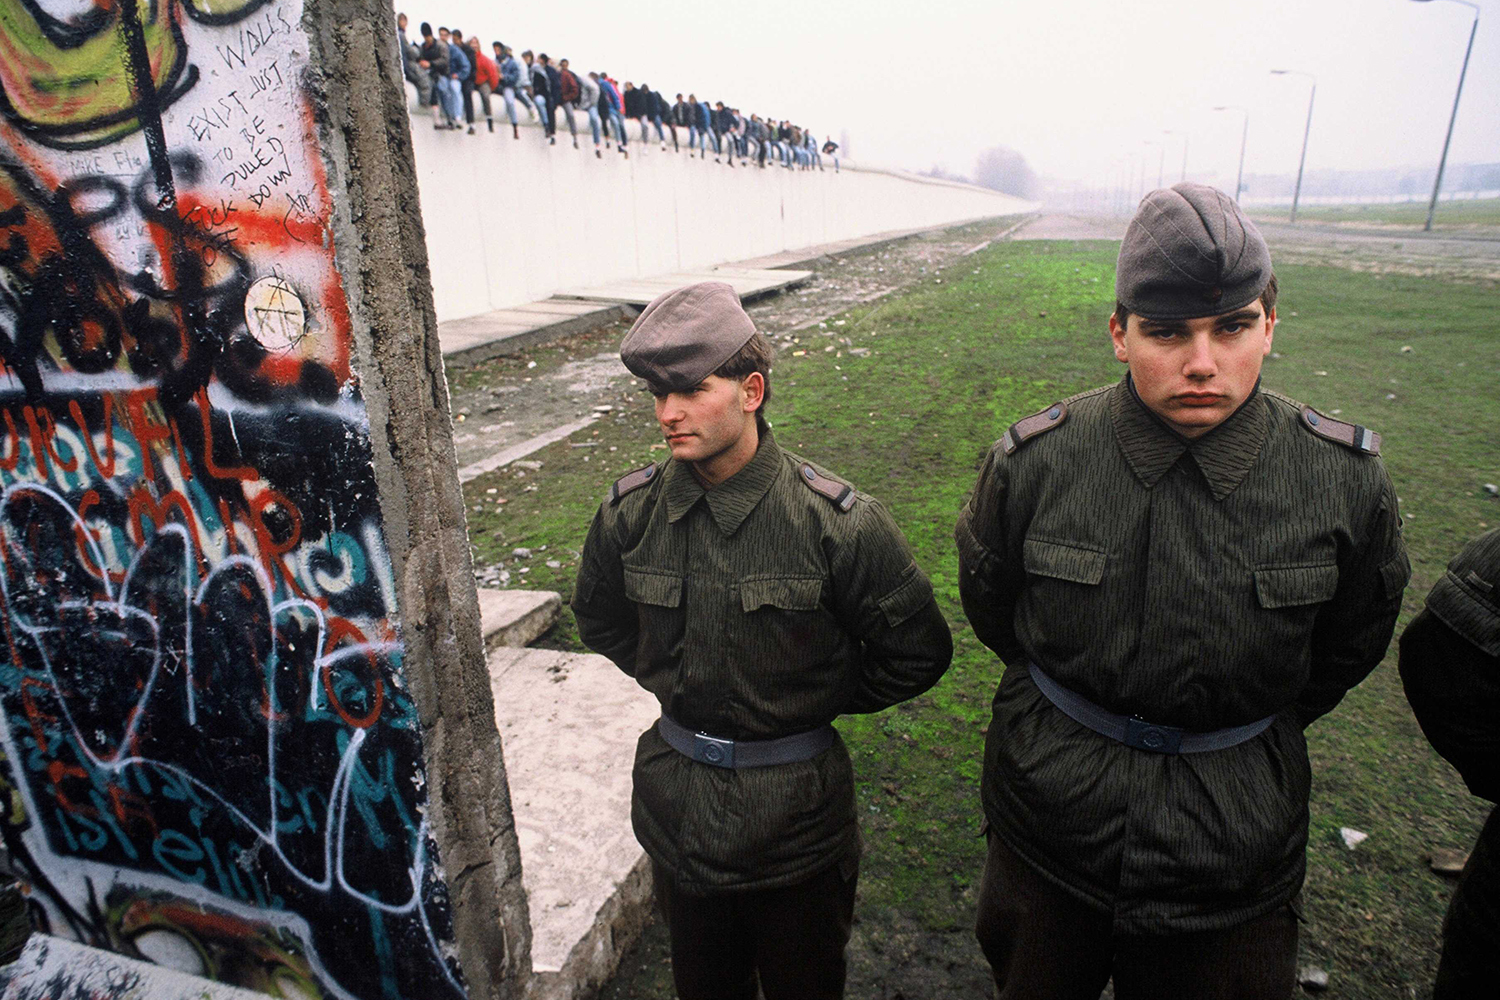 "East German border guards stand in a newly opened section of the Berlin Wall on Nov. 10, 1989. Atop the wall are celebrating East and West Germans who would have been shot only a few days before. The east-facing wall remains white, while the west-facing side is covered in graffiti. One message reads: ""Walls exist just to be pulled down."" Robert Wallis/Corbis via Getty Images"